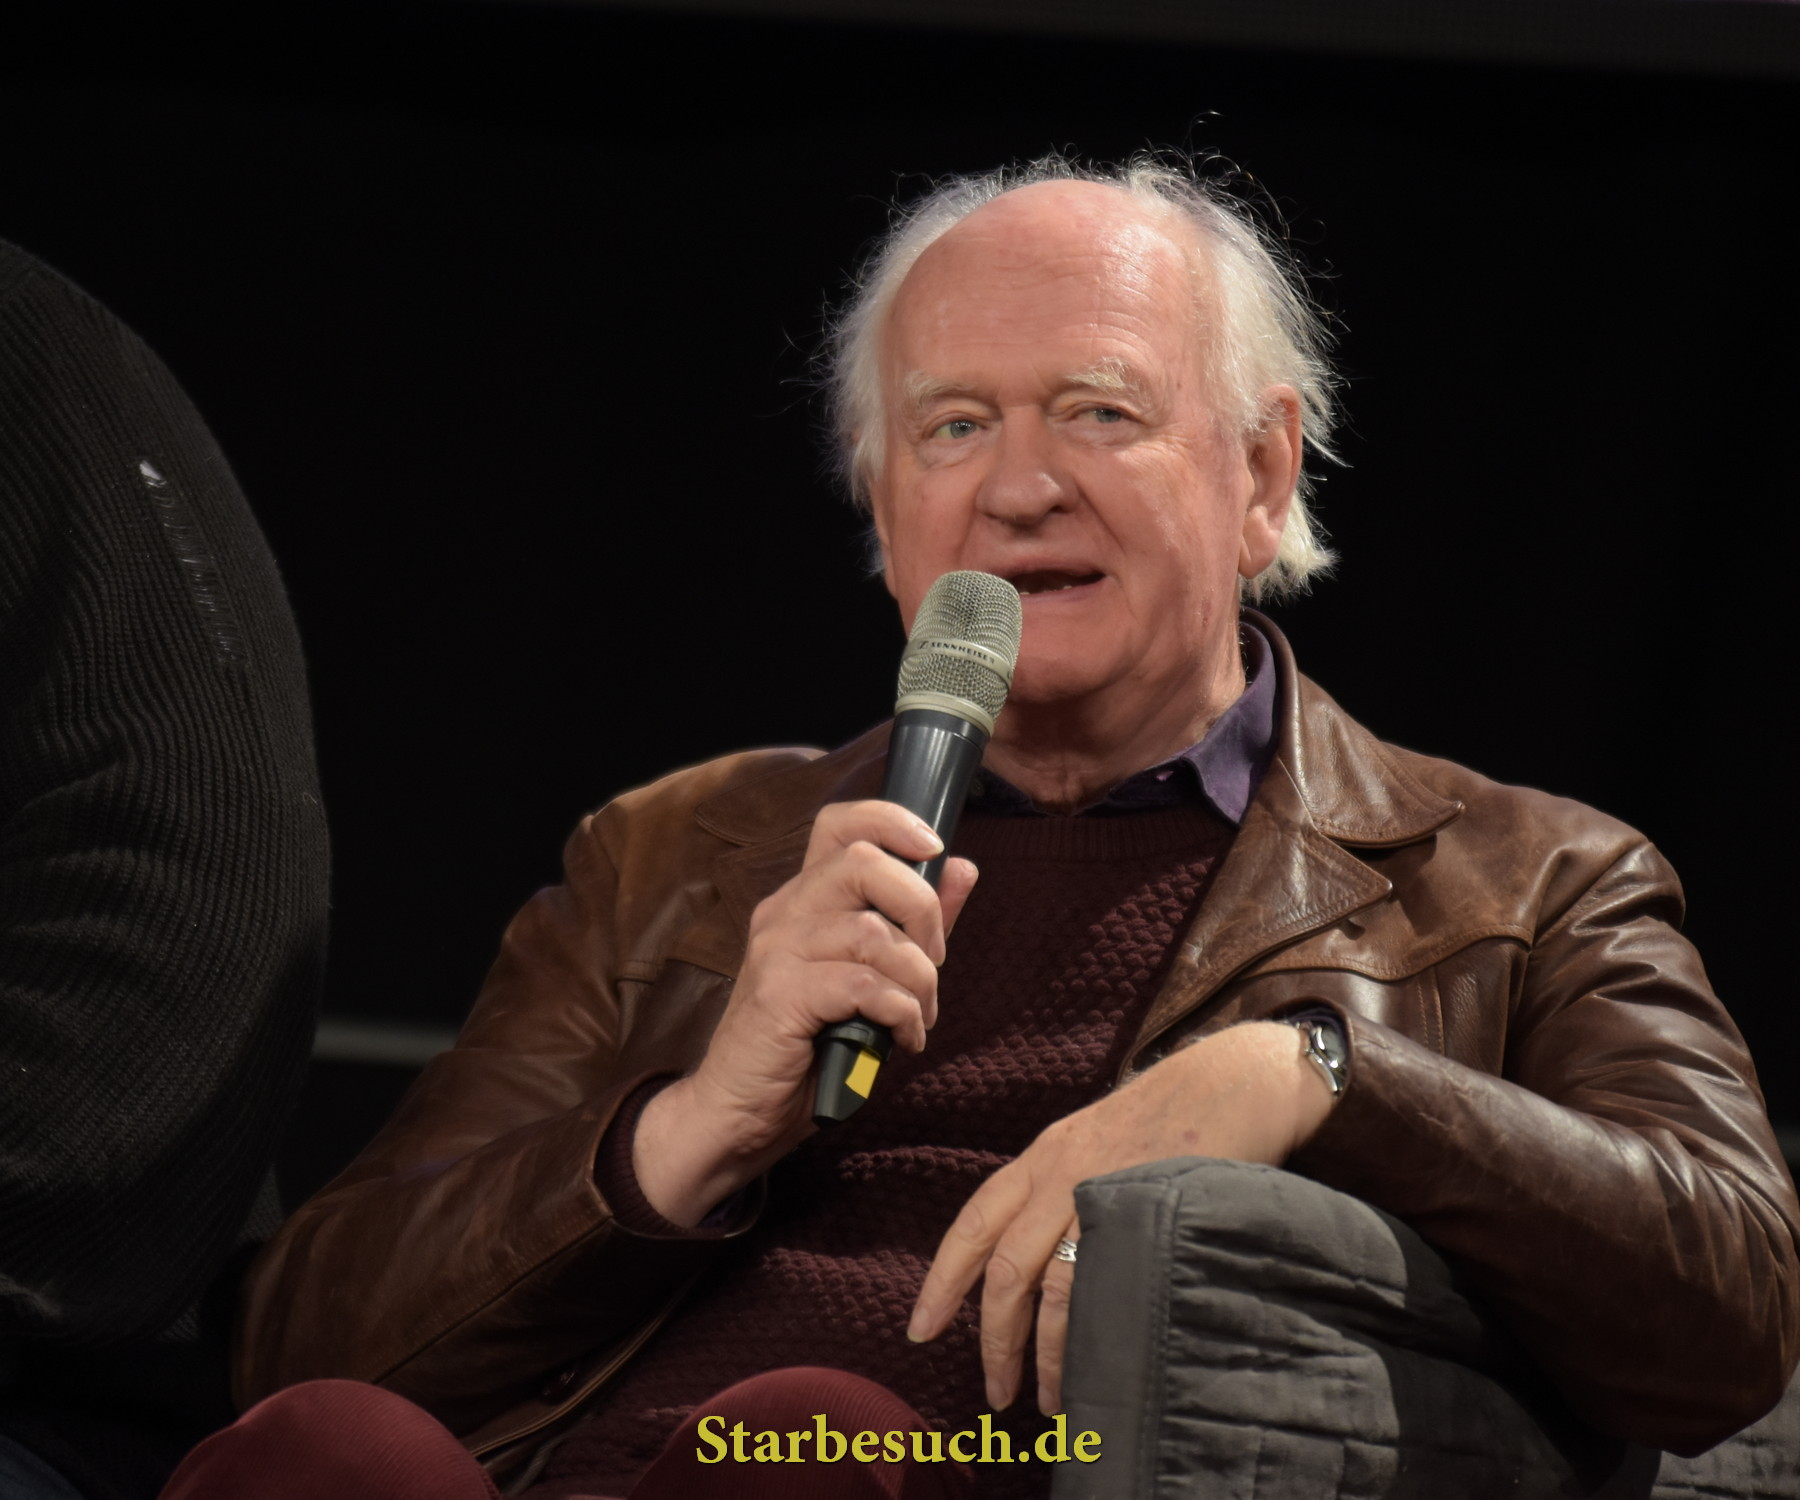 Dortmund, Germany - December 9th 2017: British Actor Oliver Ford Davies (* 1939, Star Wars: Episode I-III, Maester Cressen in Game of Thrones, Johnny English) at German Comic Con Dortmund.